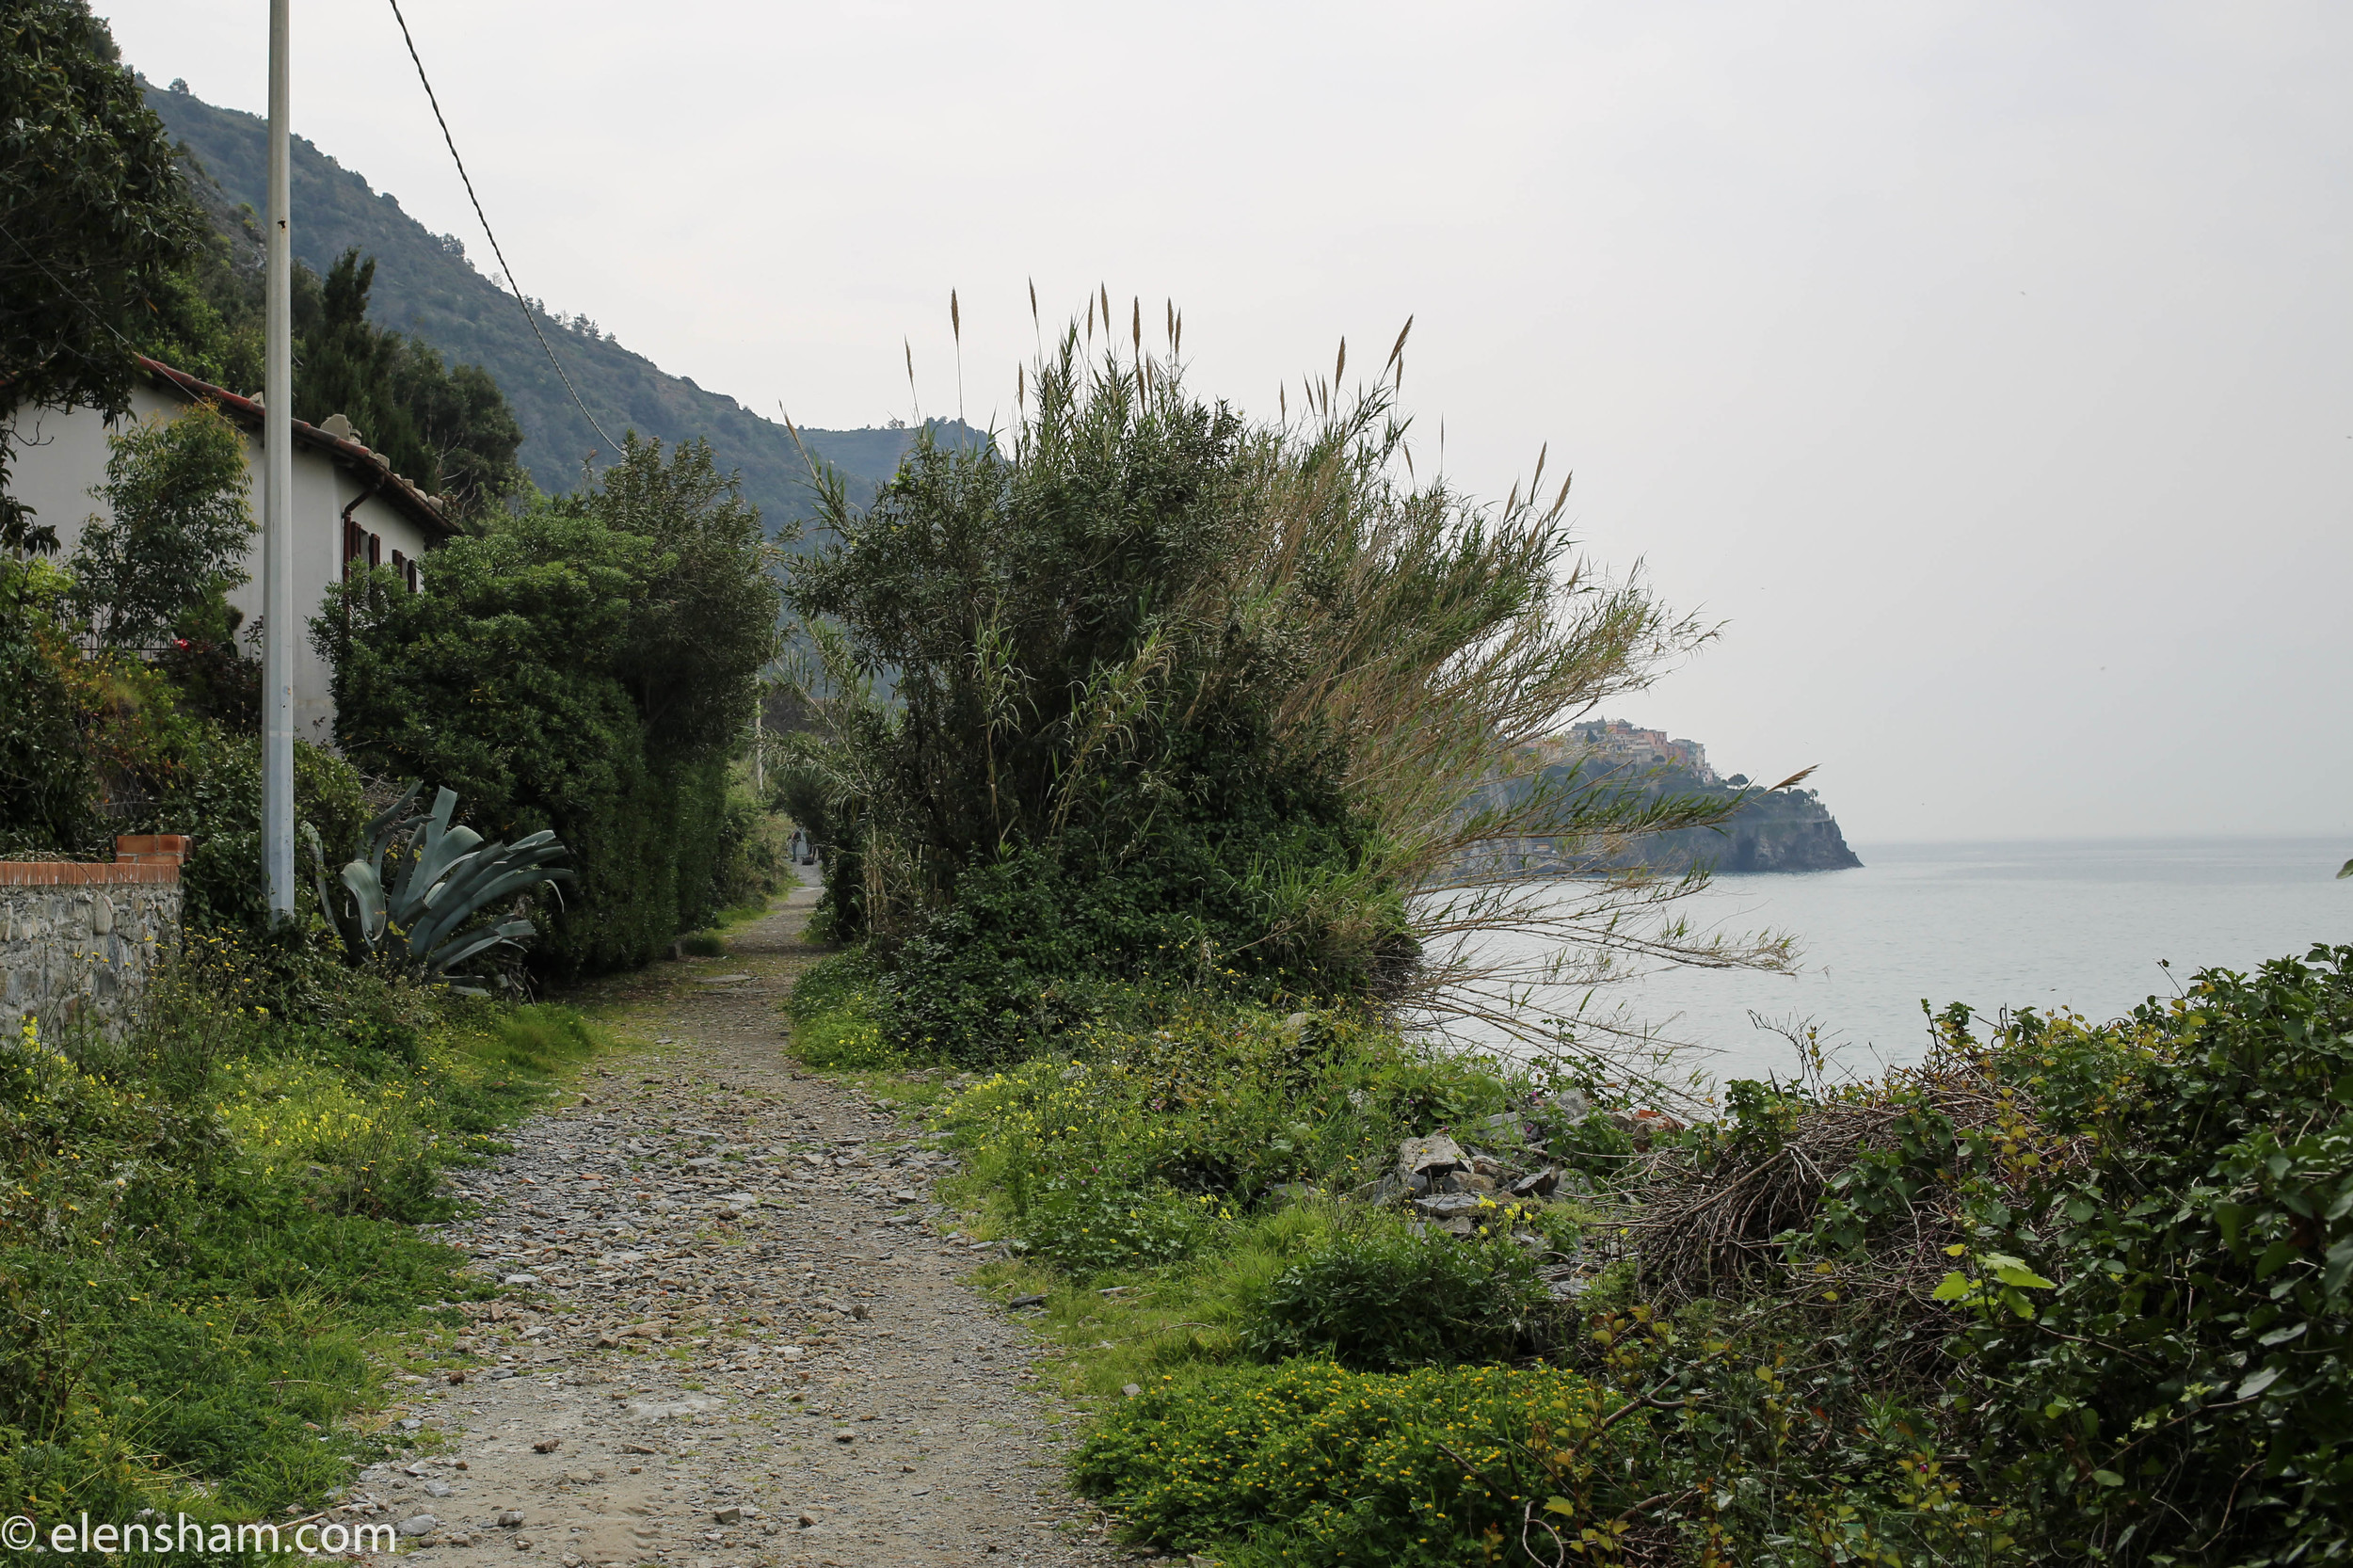 That's the last image on the way to Manarola before we had to go back.